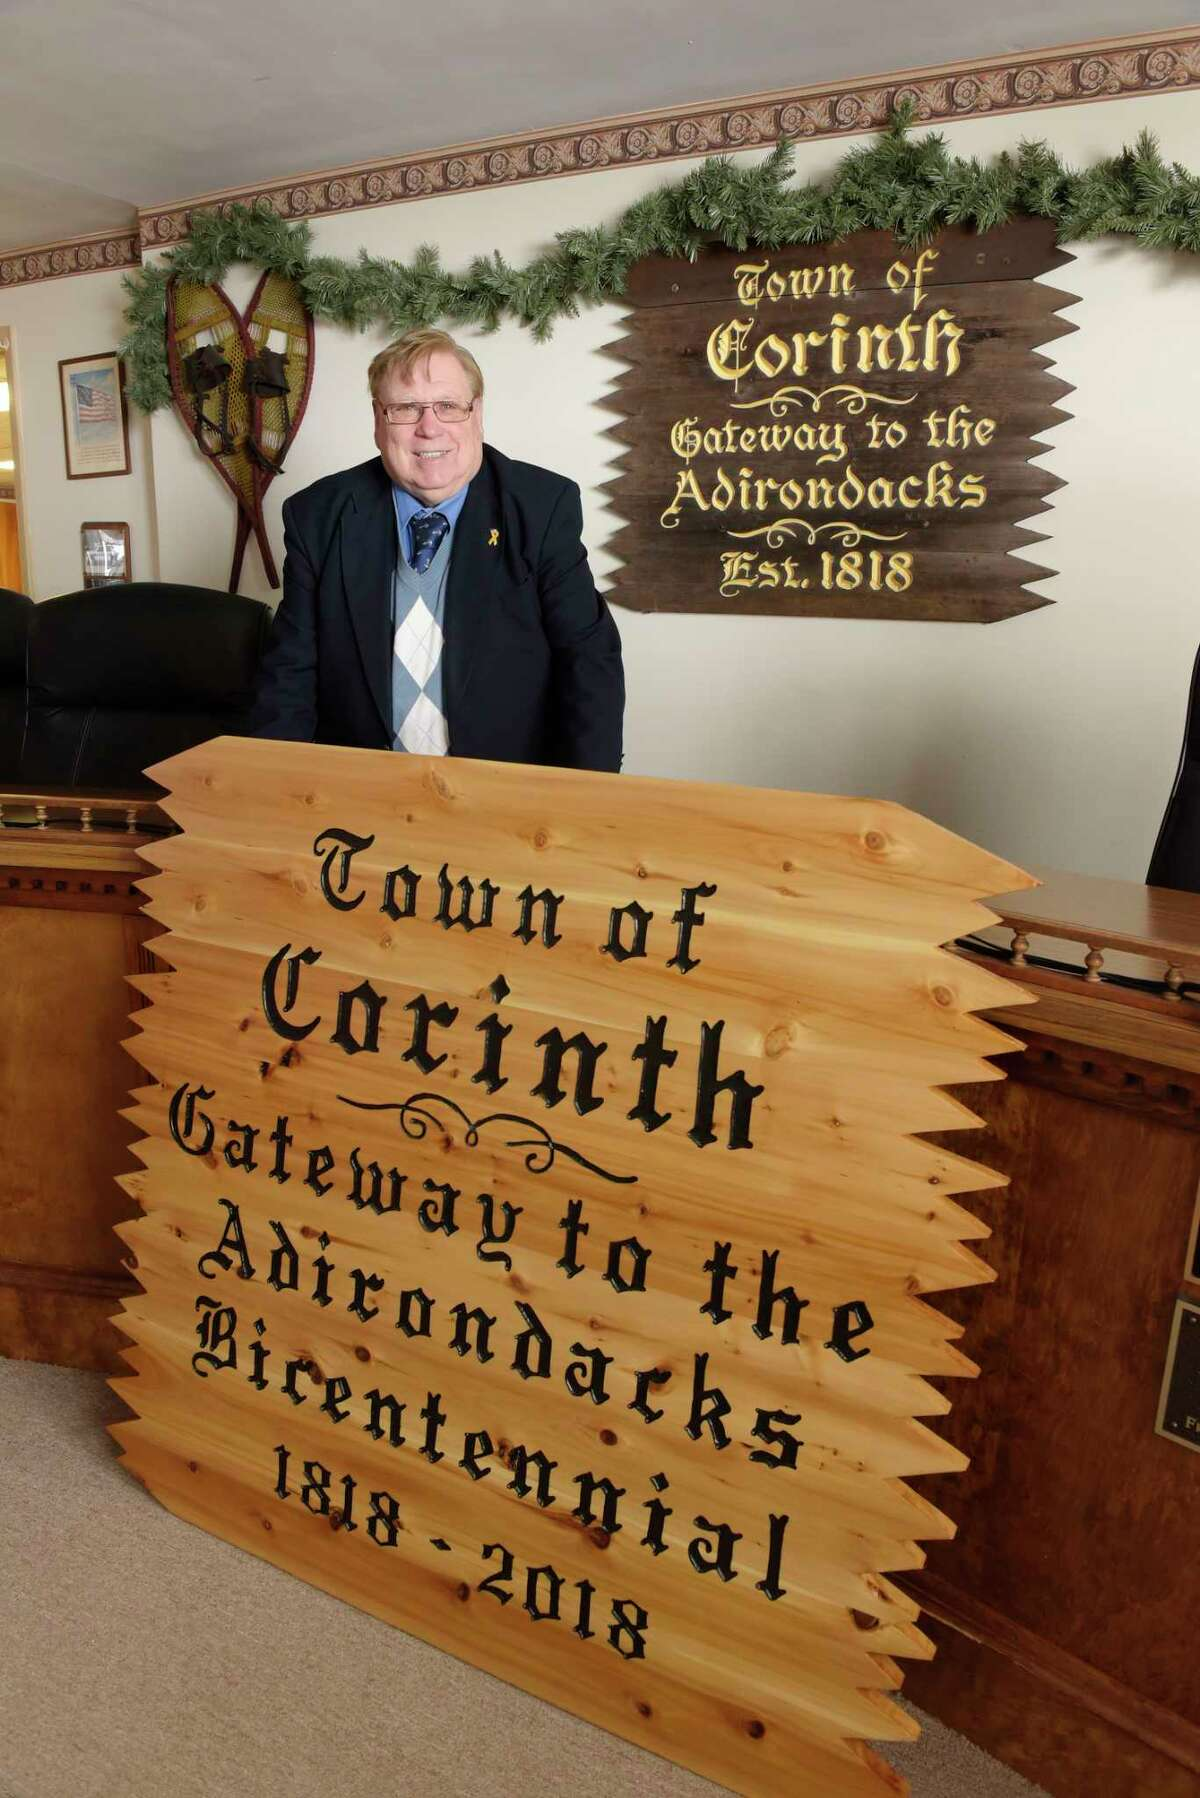 Corinth Town Supervisor Dick Lucia poses with one of the new town signs at Corinth Town Hall on Thursday, March 15, 2018, in Corinth, N.Y. On the wall in the background is the last remaining older town sign. The old sign is over 30 years old, Lucia said. The new signs will be places at the four entrances to the town sometime in the spring. (Paul Buckowski/Times Union)